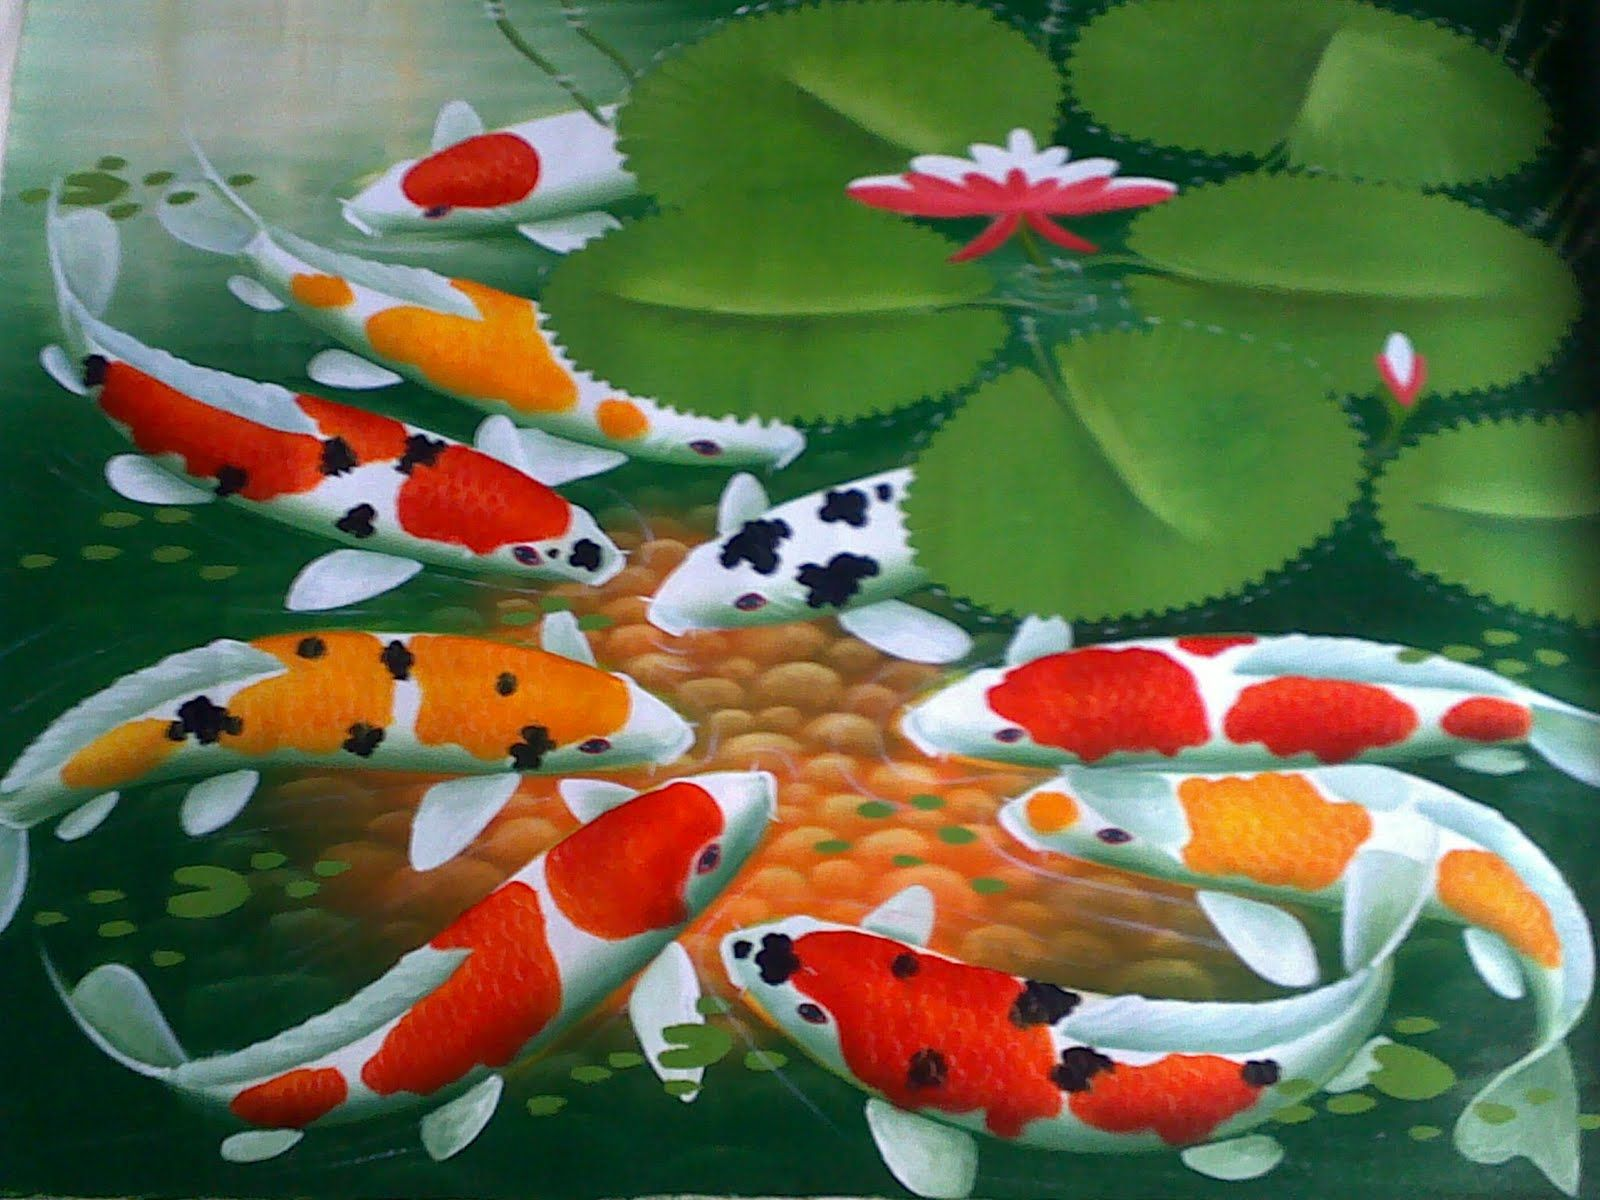 Best wallpaper hd koi fish for desktop free download for Koi fish pictures